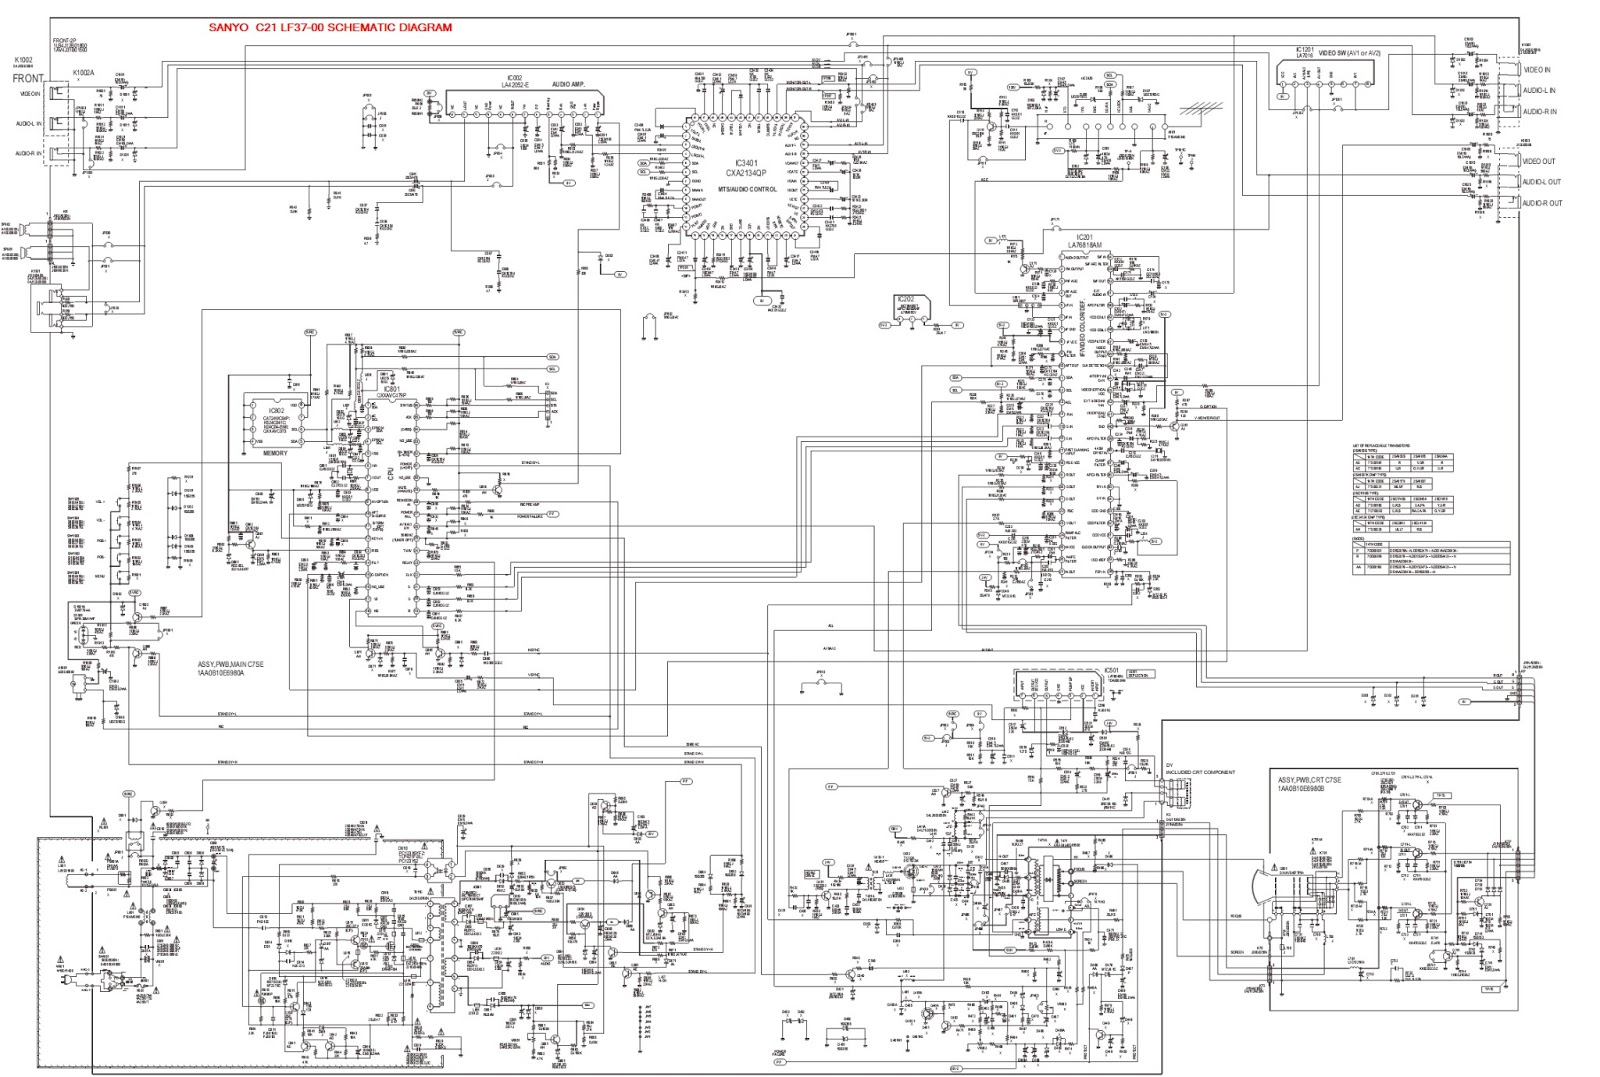 medium resolution of sanyo tv diagram wiring diagrams tar sanyo tv kit diagram sanyo tv diagram